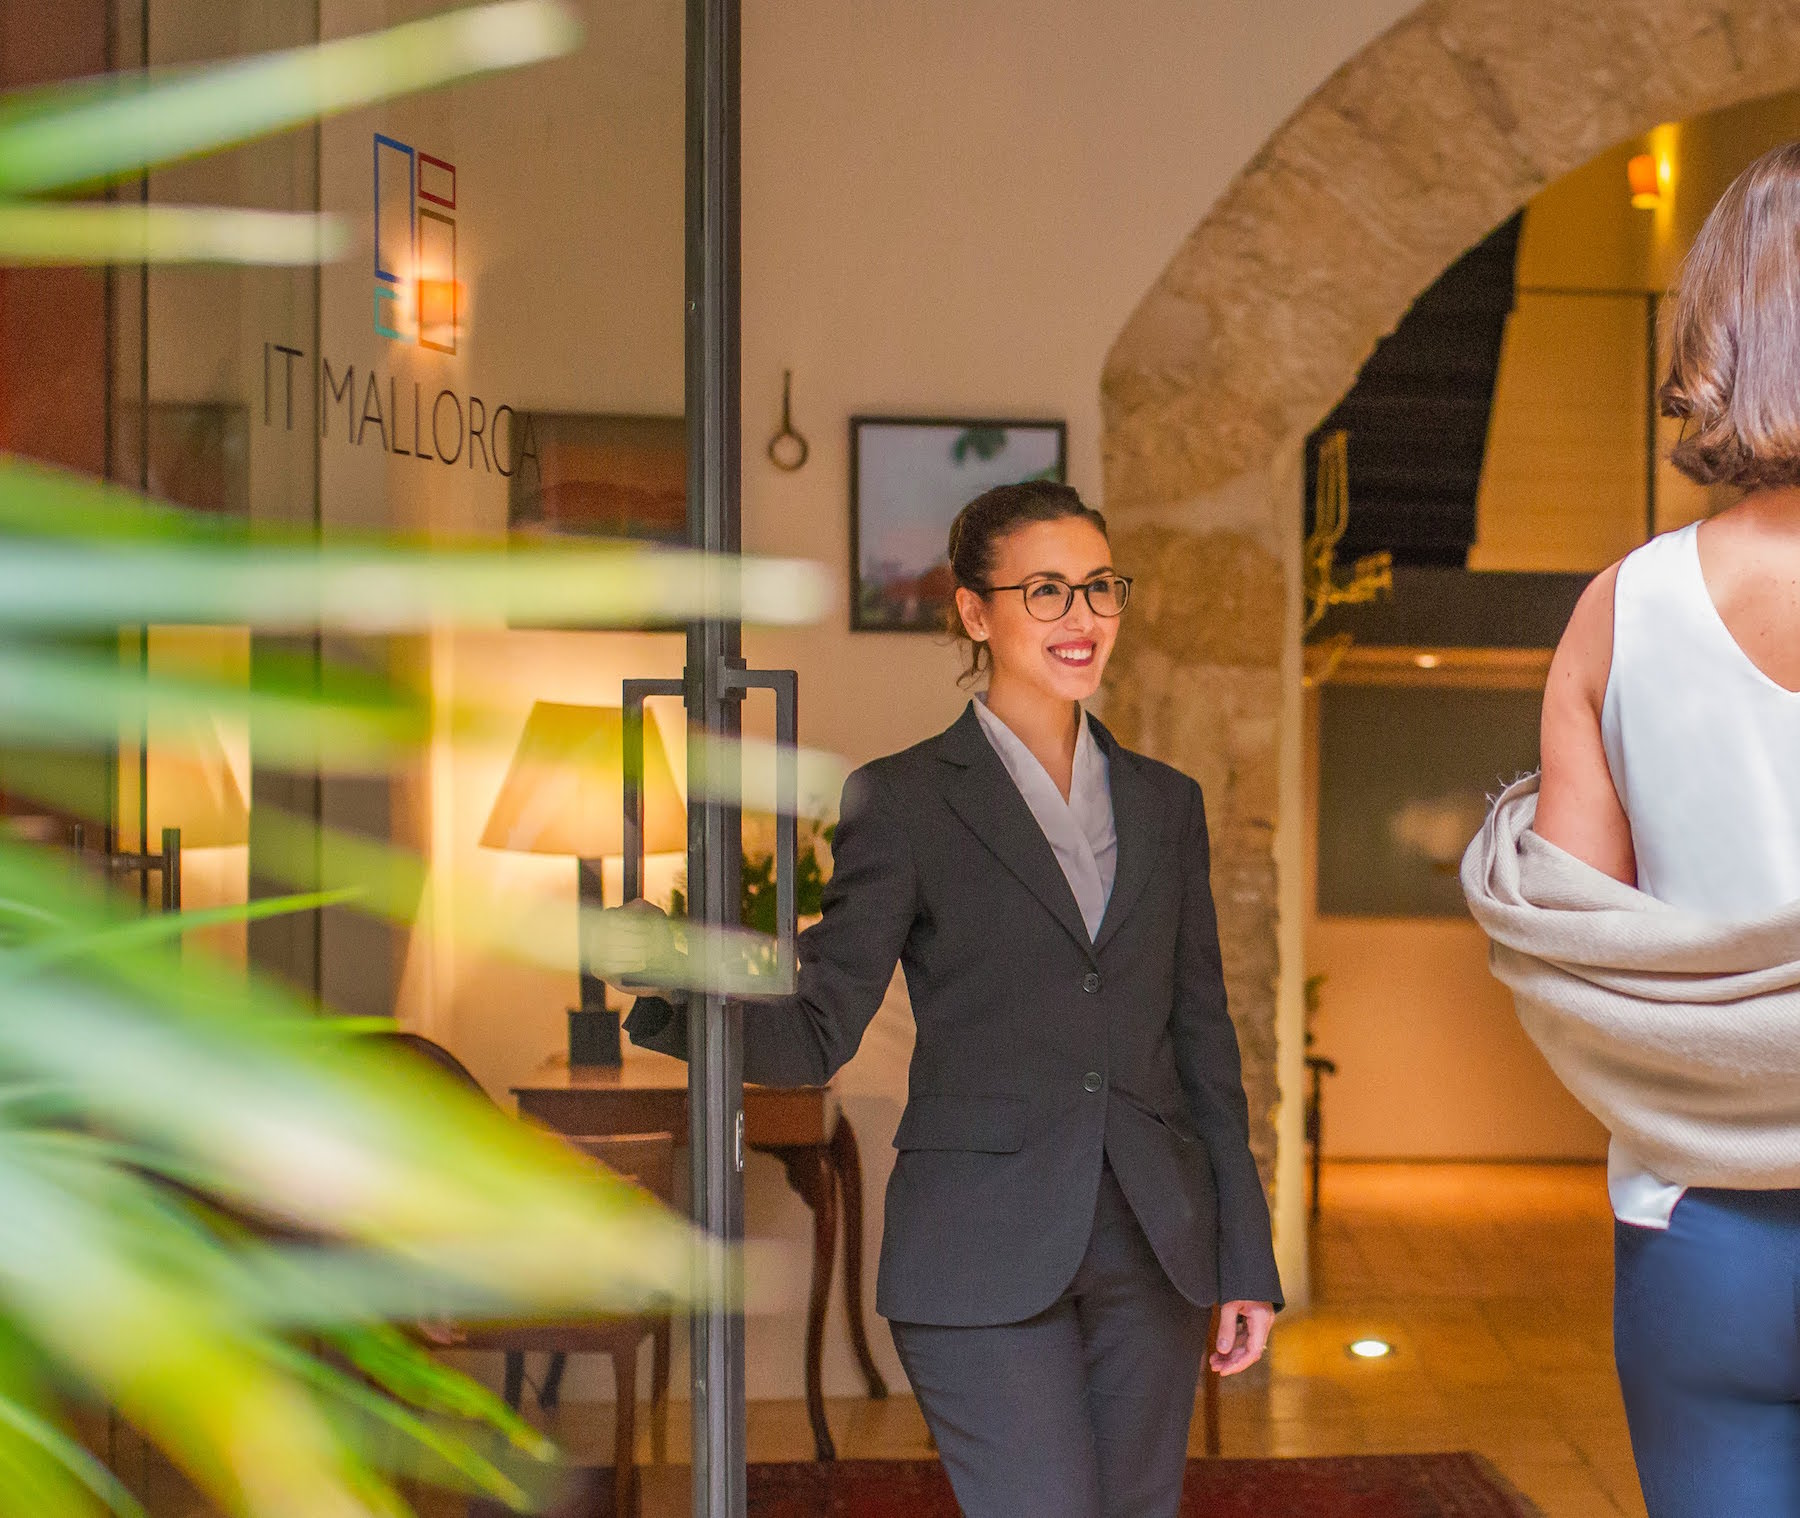 Welcome to Boutique Hotel Can Cera in Palma with a smile